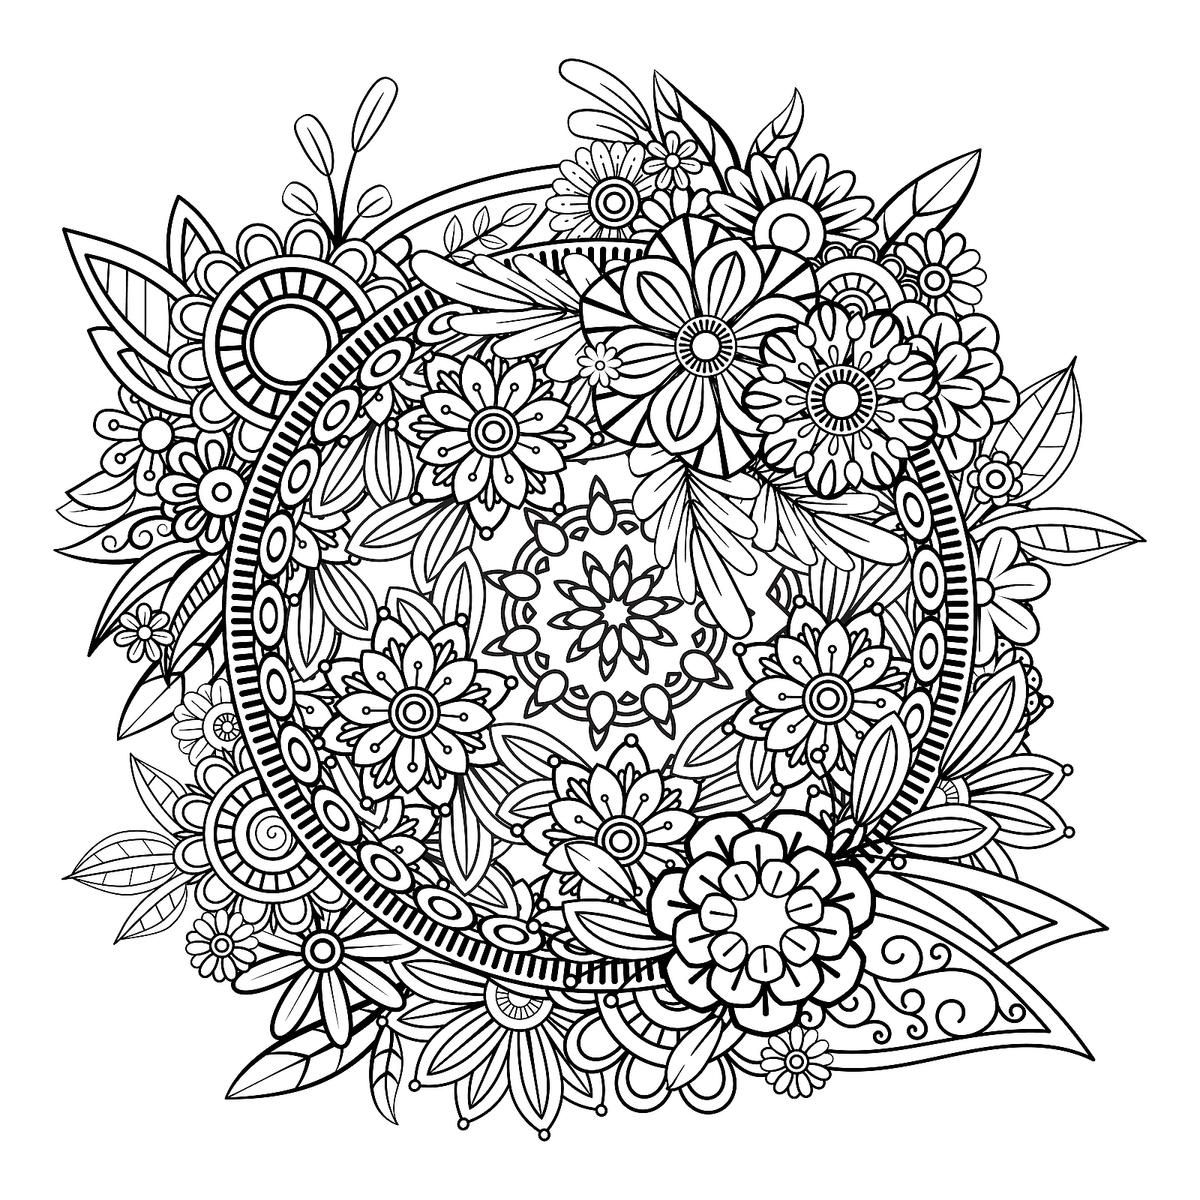 Mandala Coloring Pages Free Printable Coloring Pages Of Mandalas For Adults Kids Printables 30seconds Mom In 2021 Mandala Coloring Pages Mandala Coloring Mandala Coloring Books